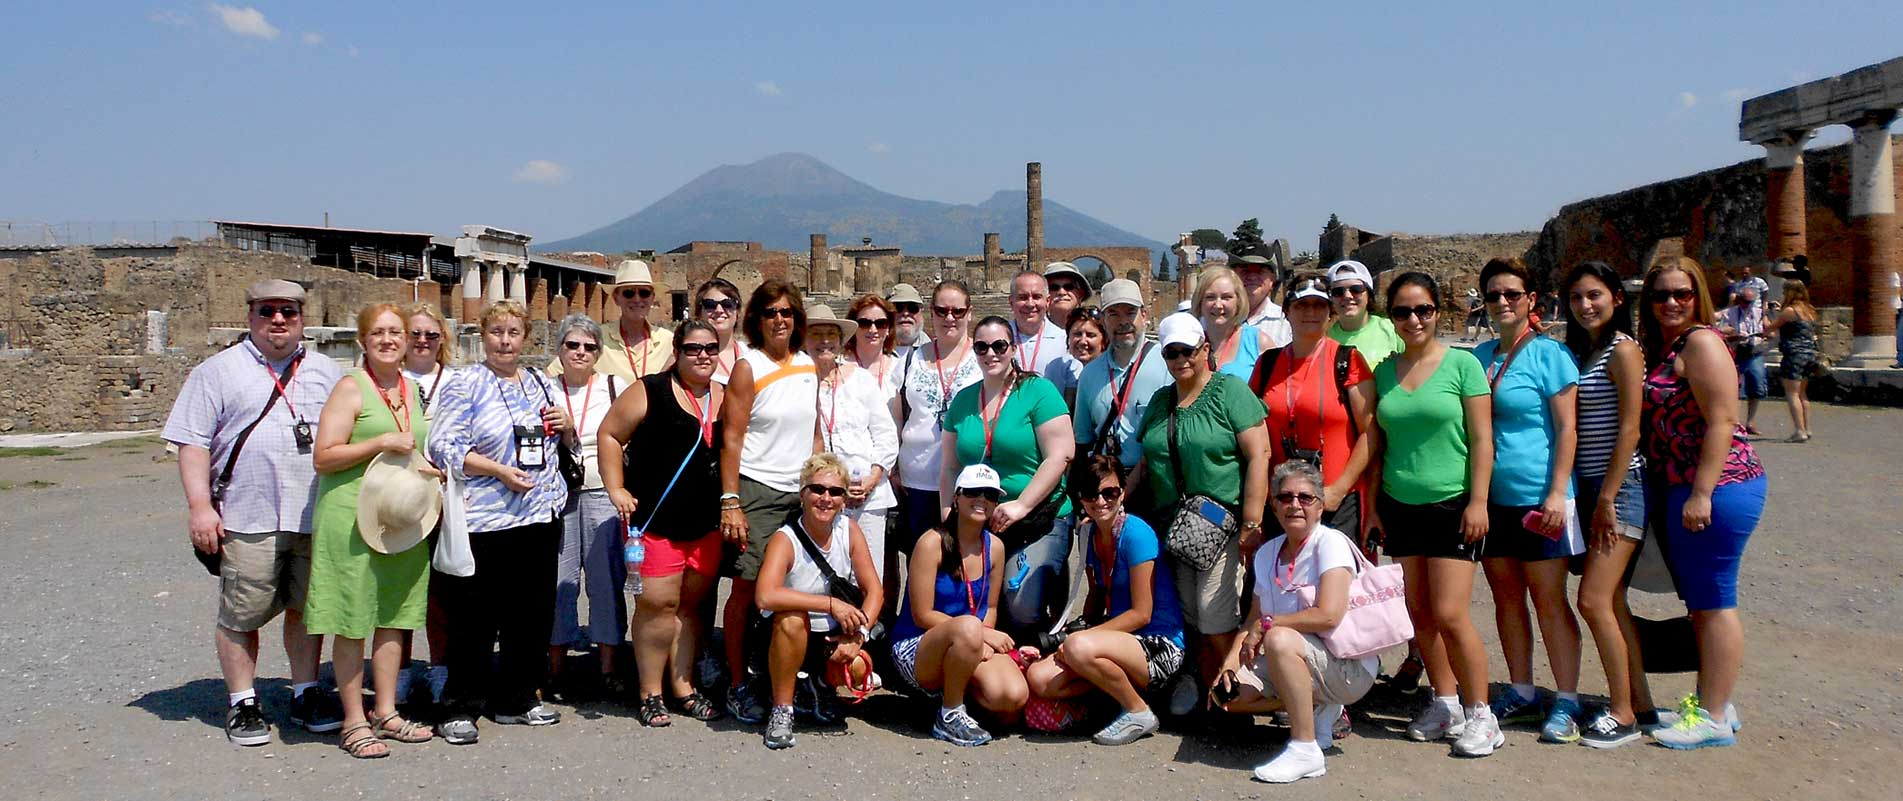 Italy Pompeii Group